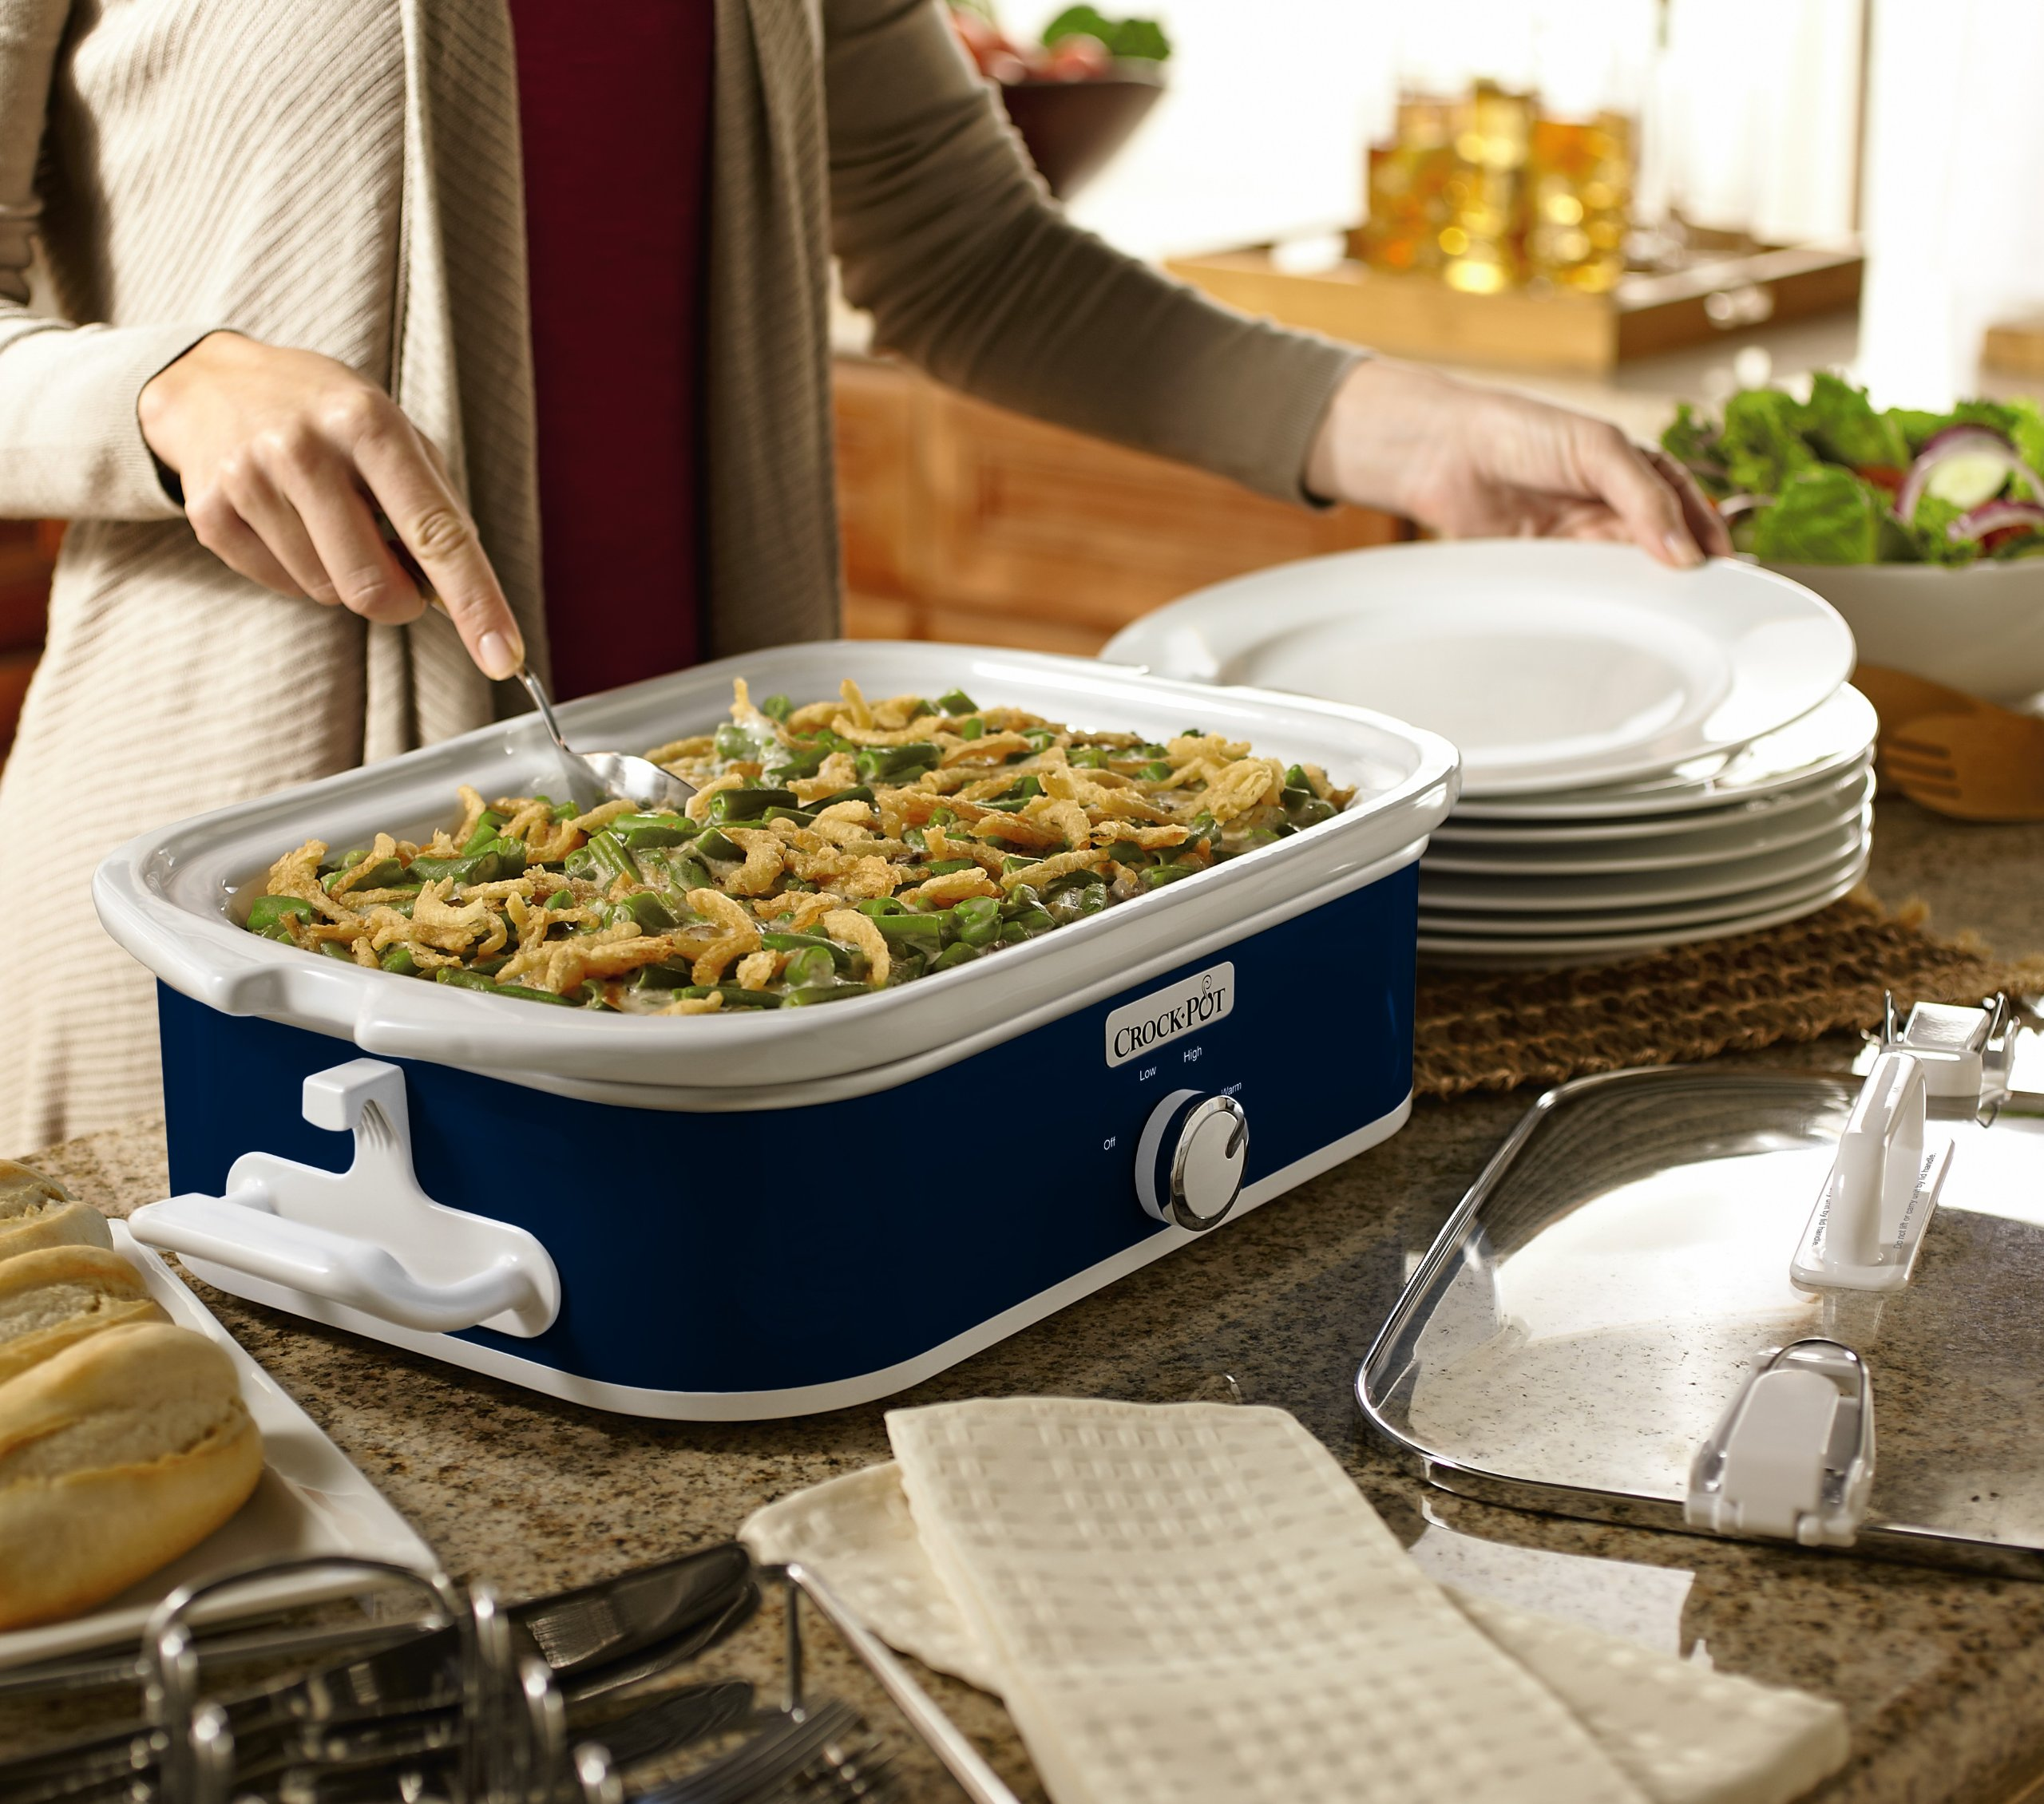 Crock-Pot SCCPCCM350-BL 3.5-Quart Casserole Crock Manual Slow Cooker, Navy Blue